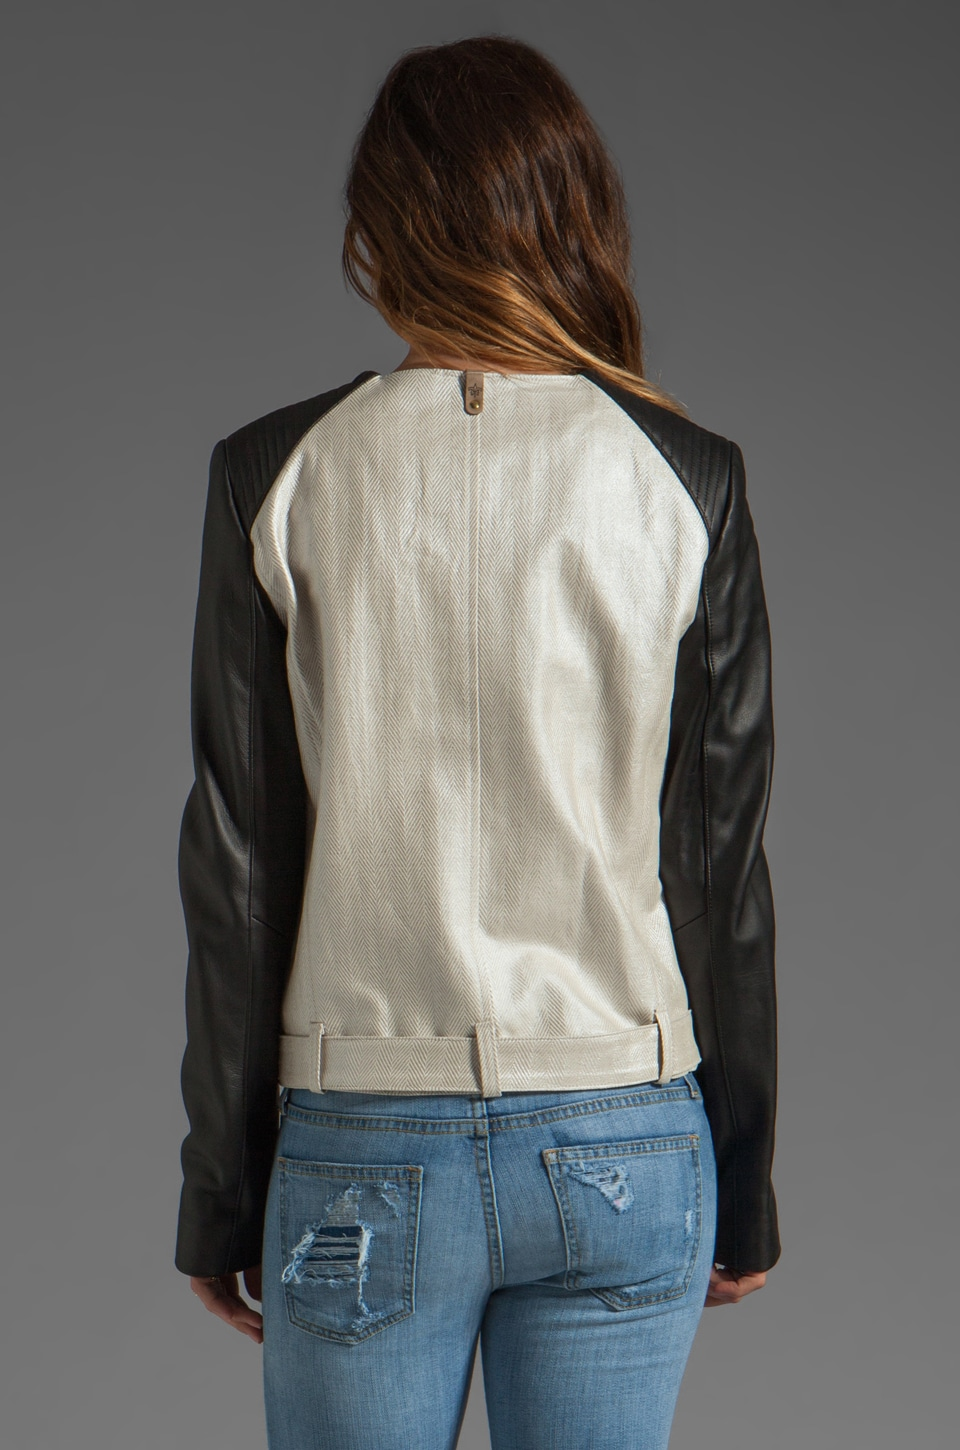 Mackage Belle Distressed Leather Jacket in Bone